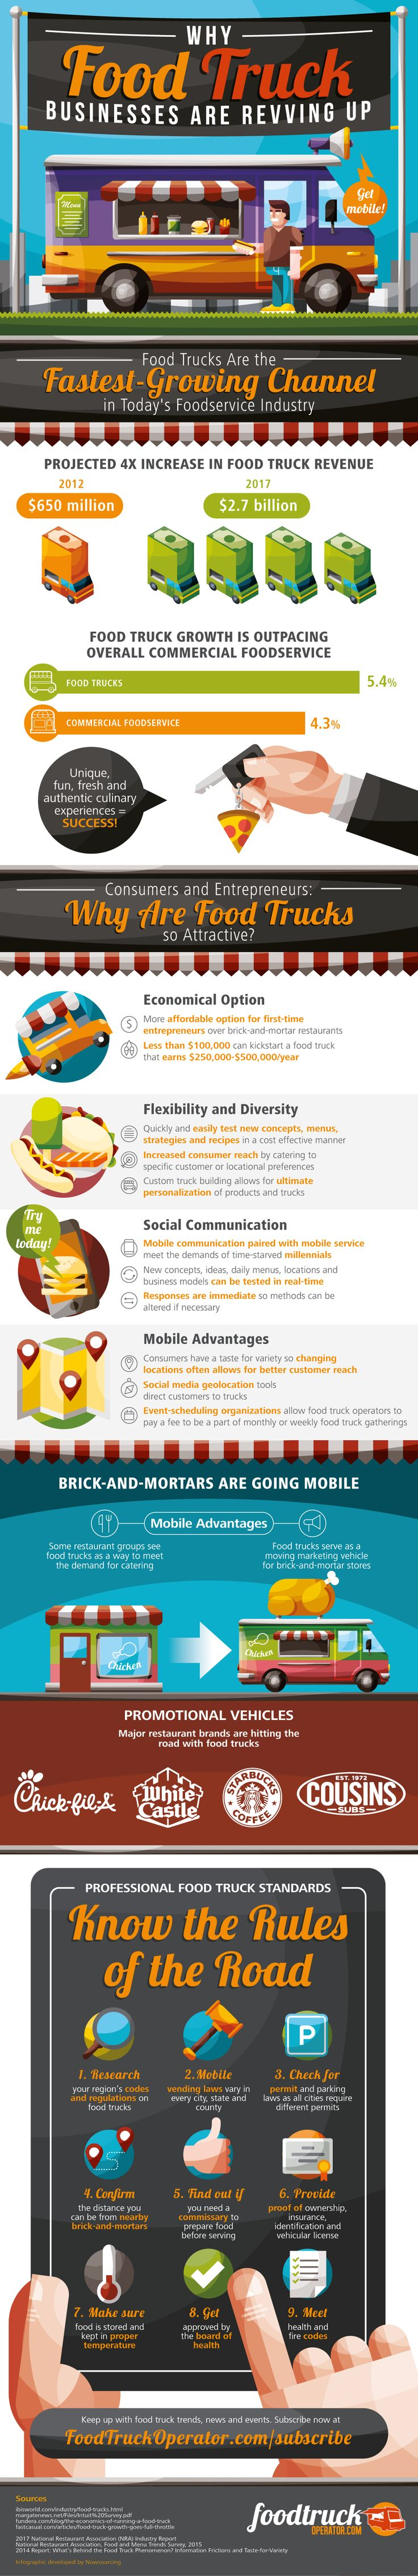 Why Food Truck Businesses Are Revving Up #Infographic #Business #Food